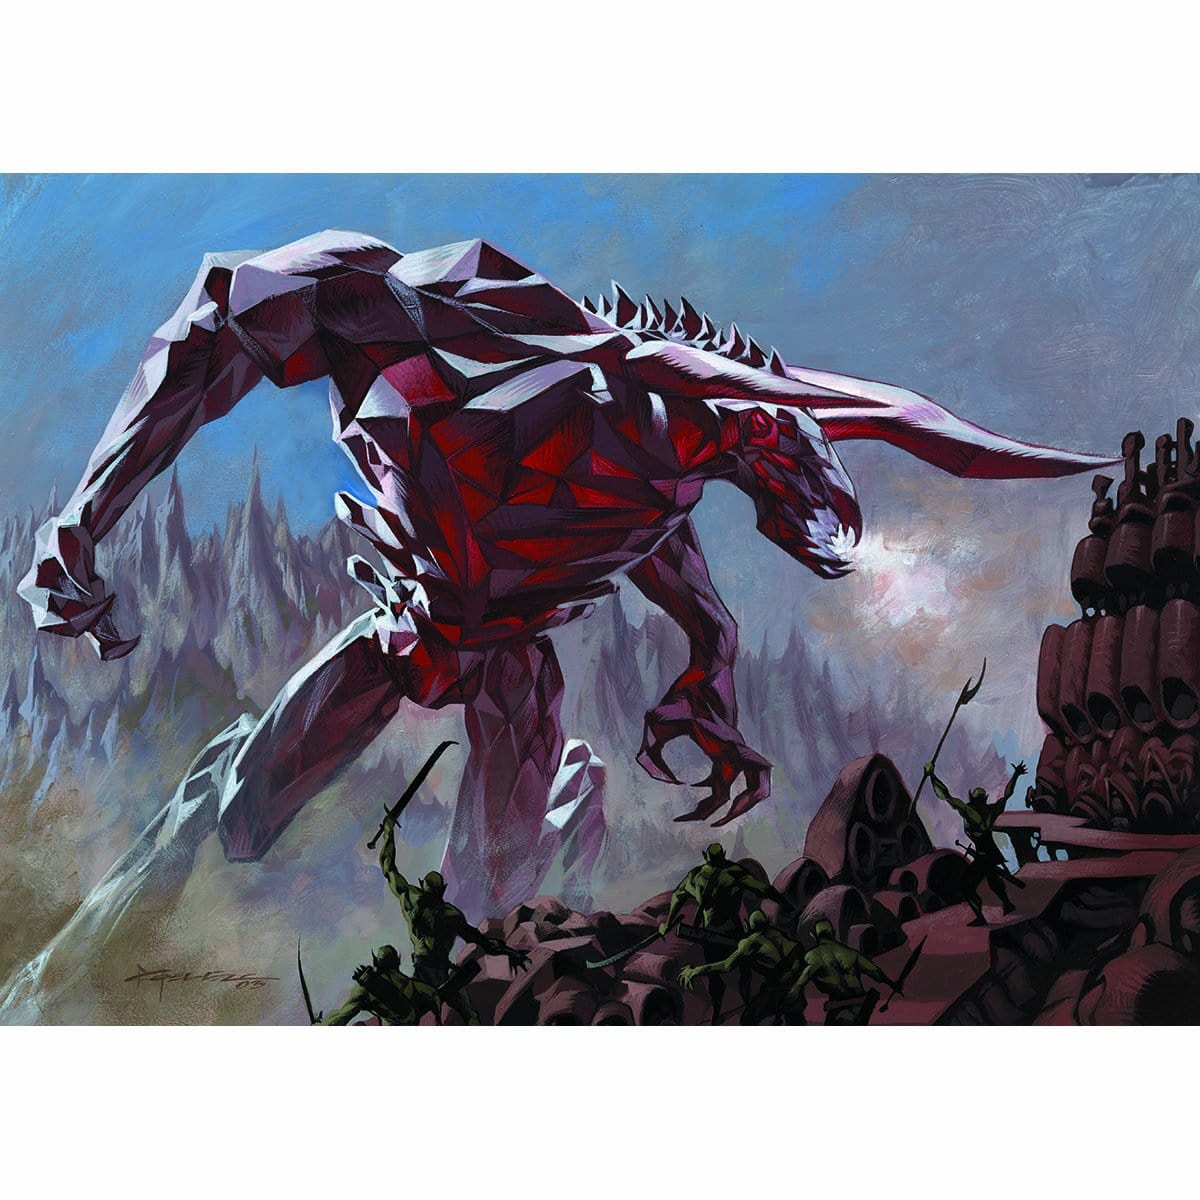 Bringer of the Red Dawn Print - Print - Original Magic Art - Accessories for Magic the Gathering and other card games